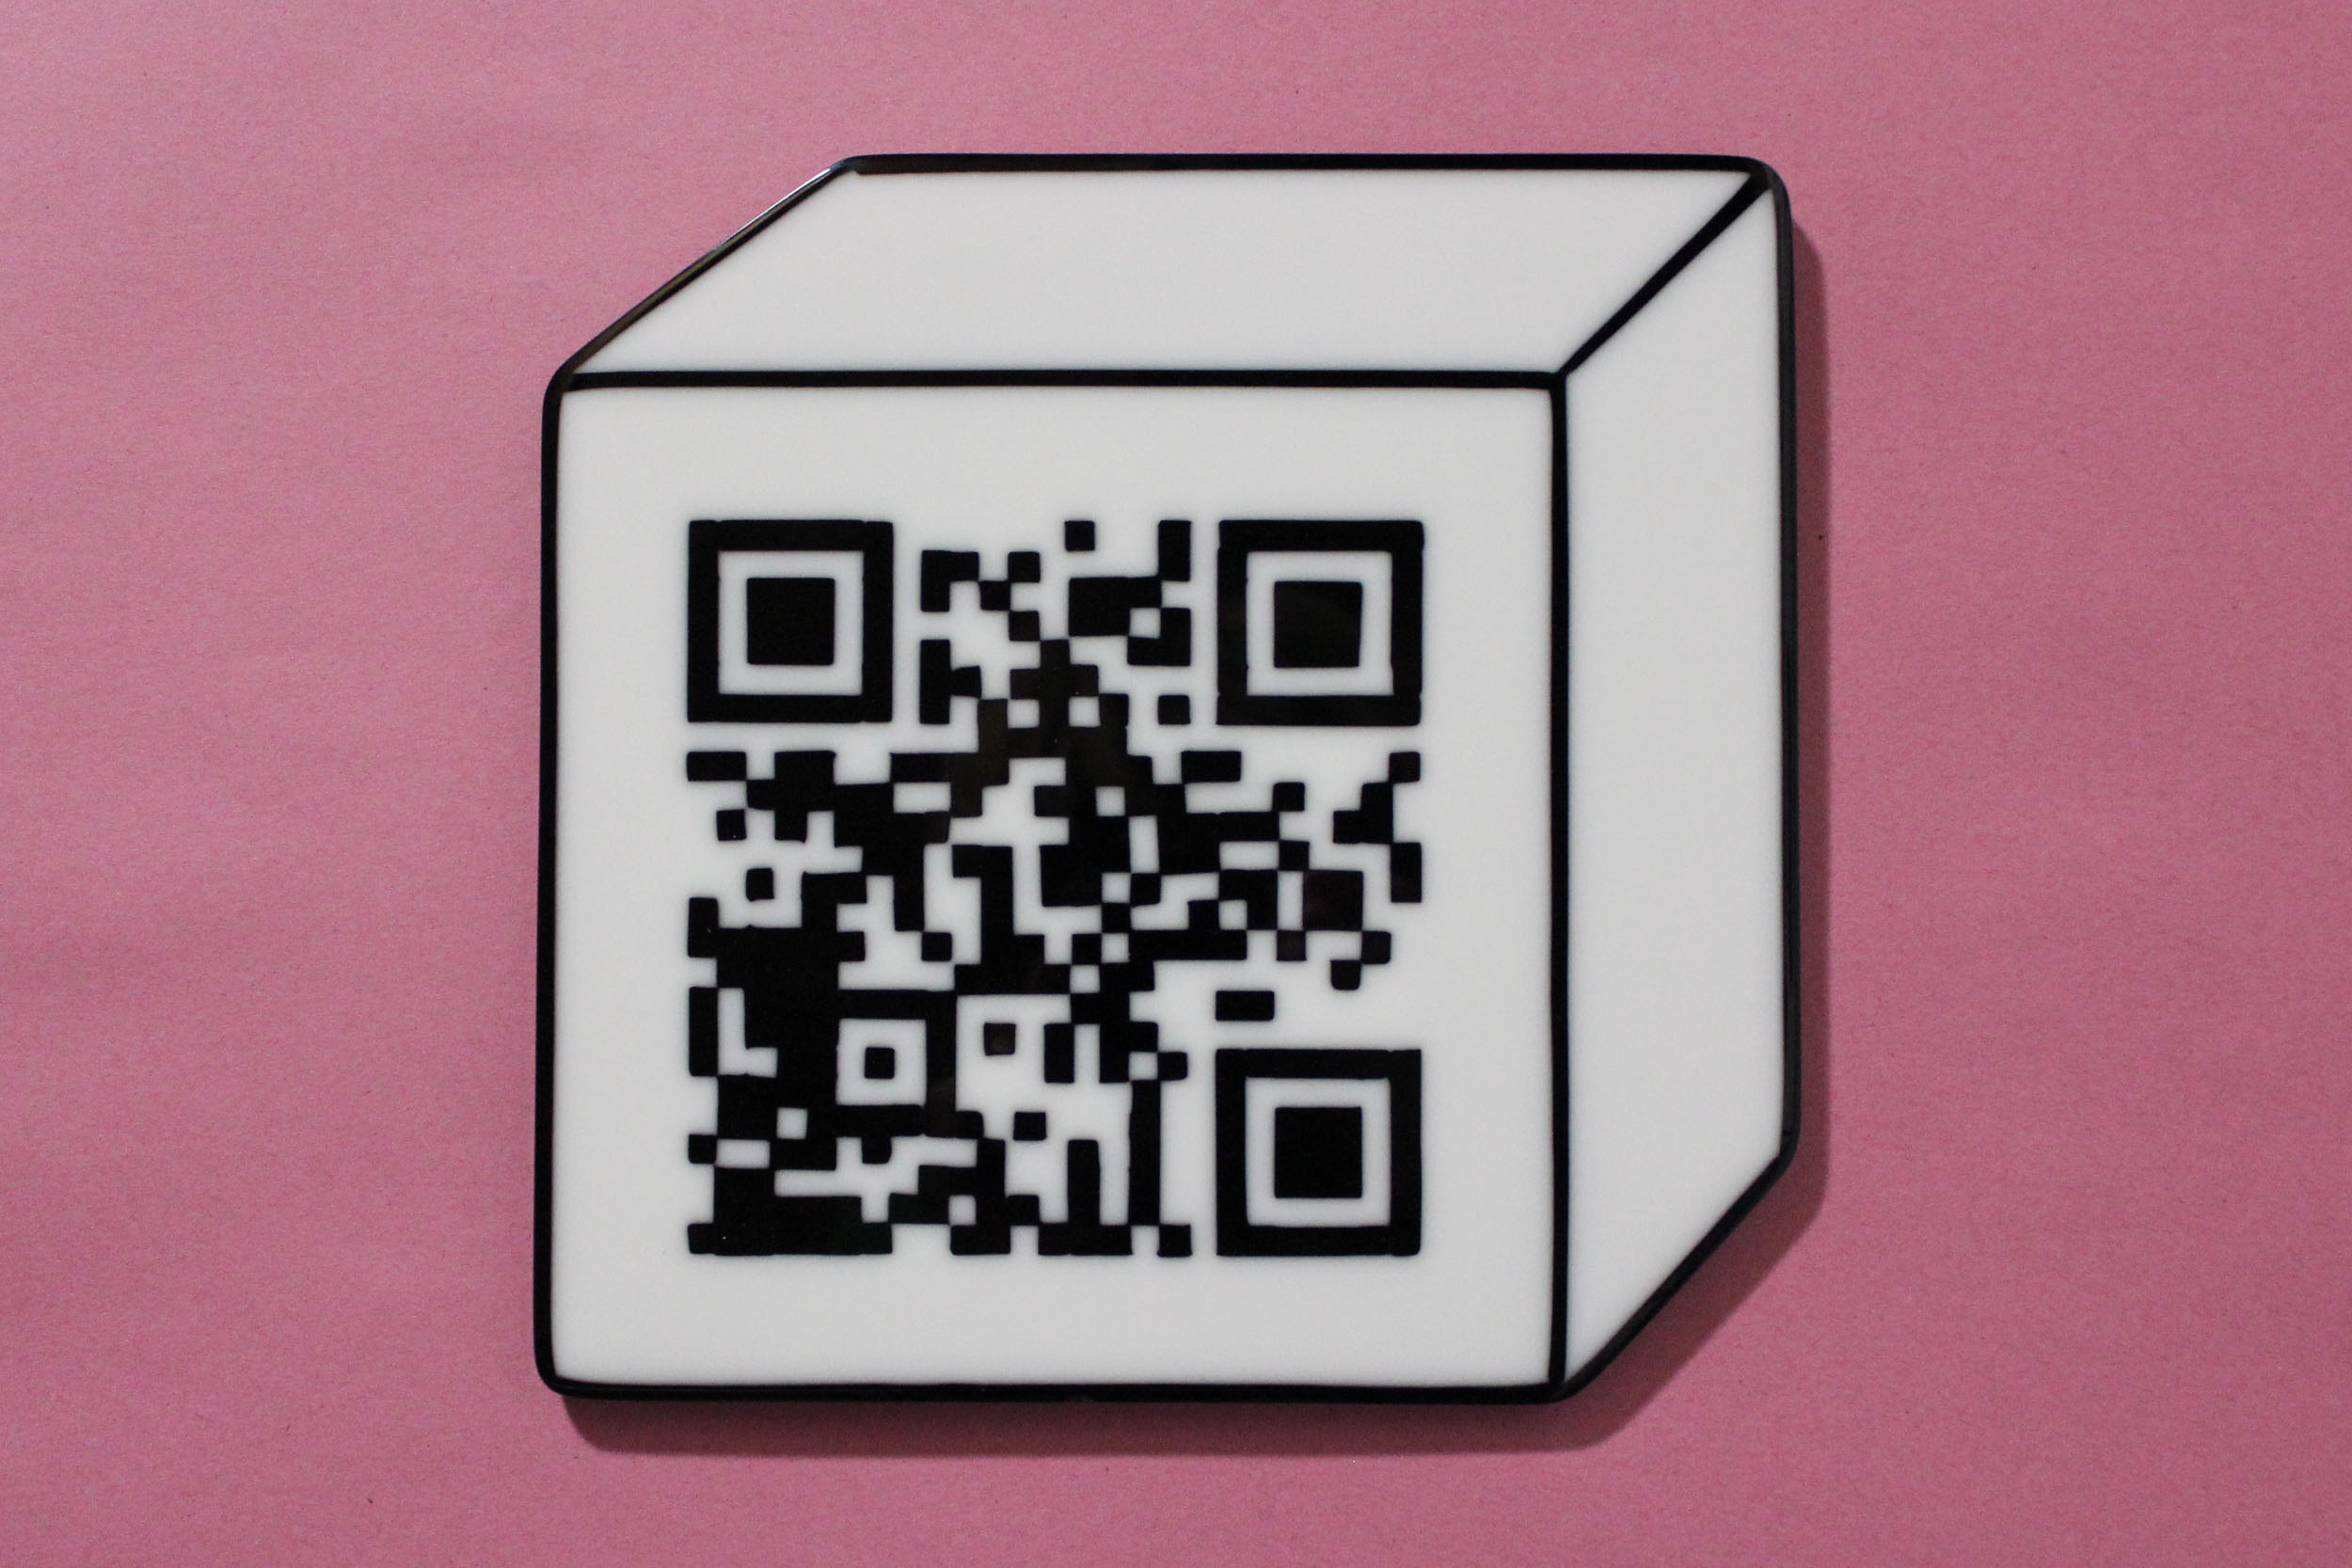 Flatpacked. Fused glass artwork showing a white cube and a QR code by Victoria Scholes